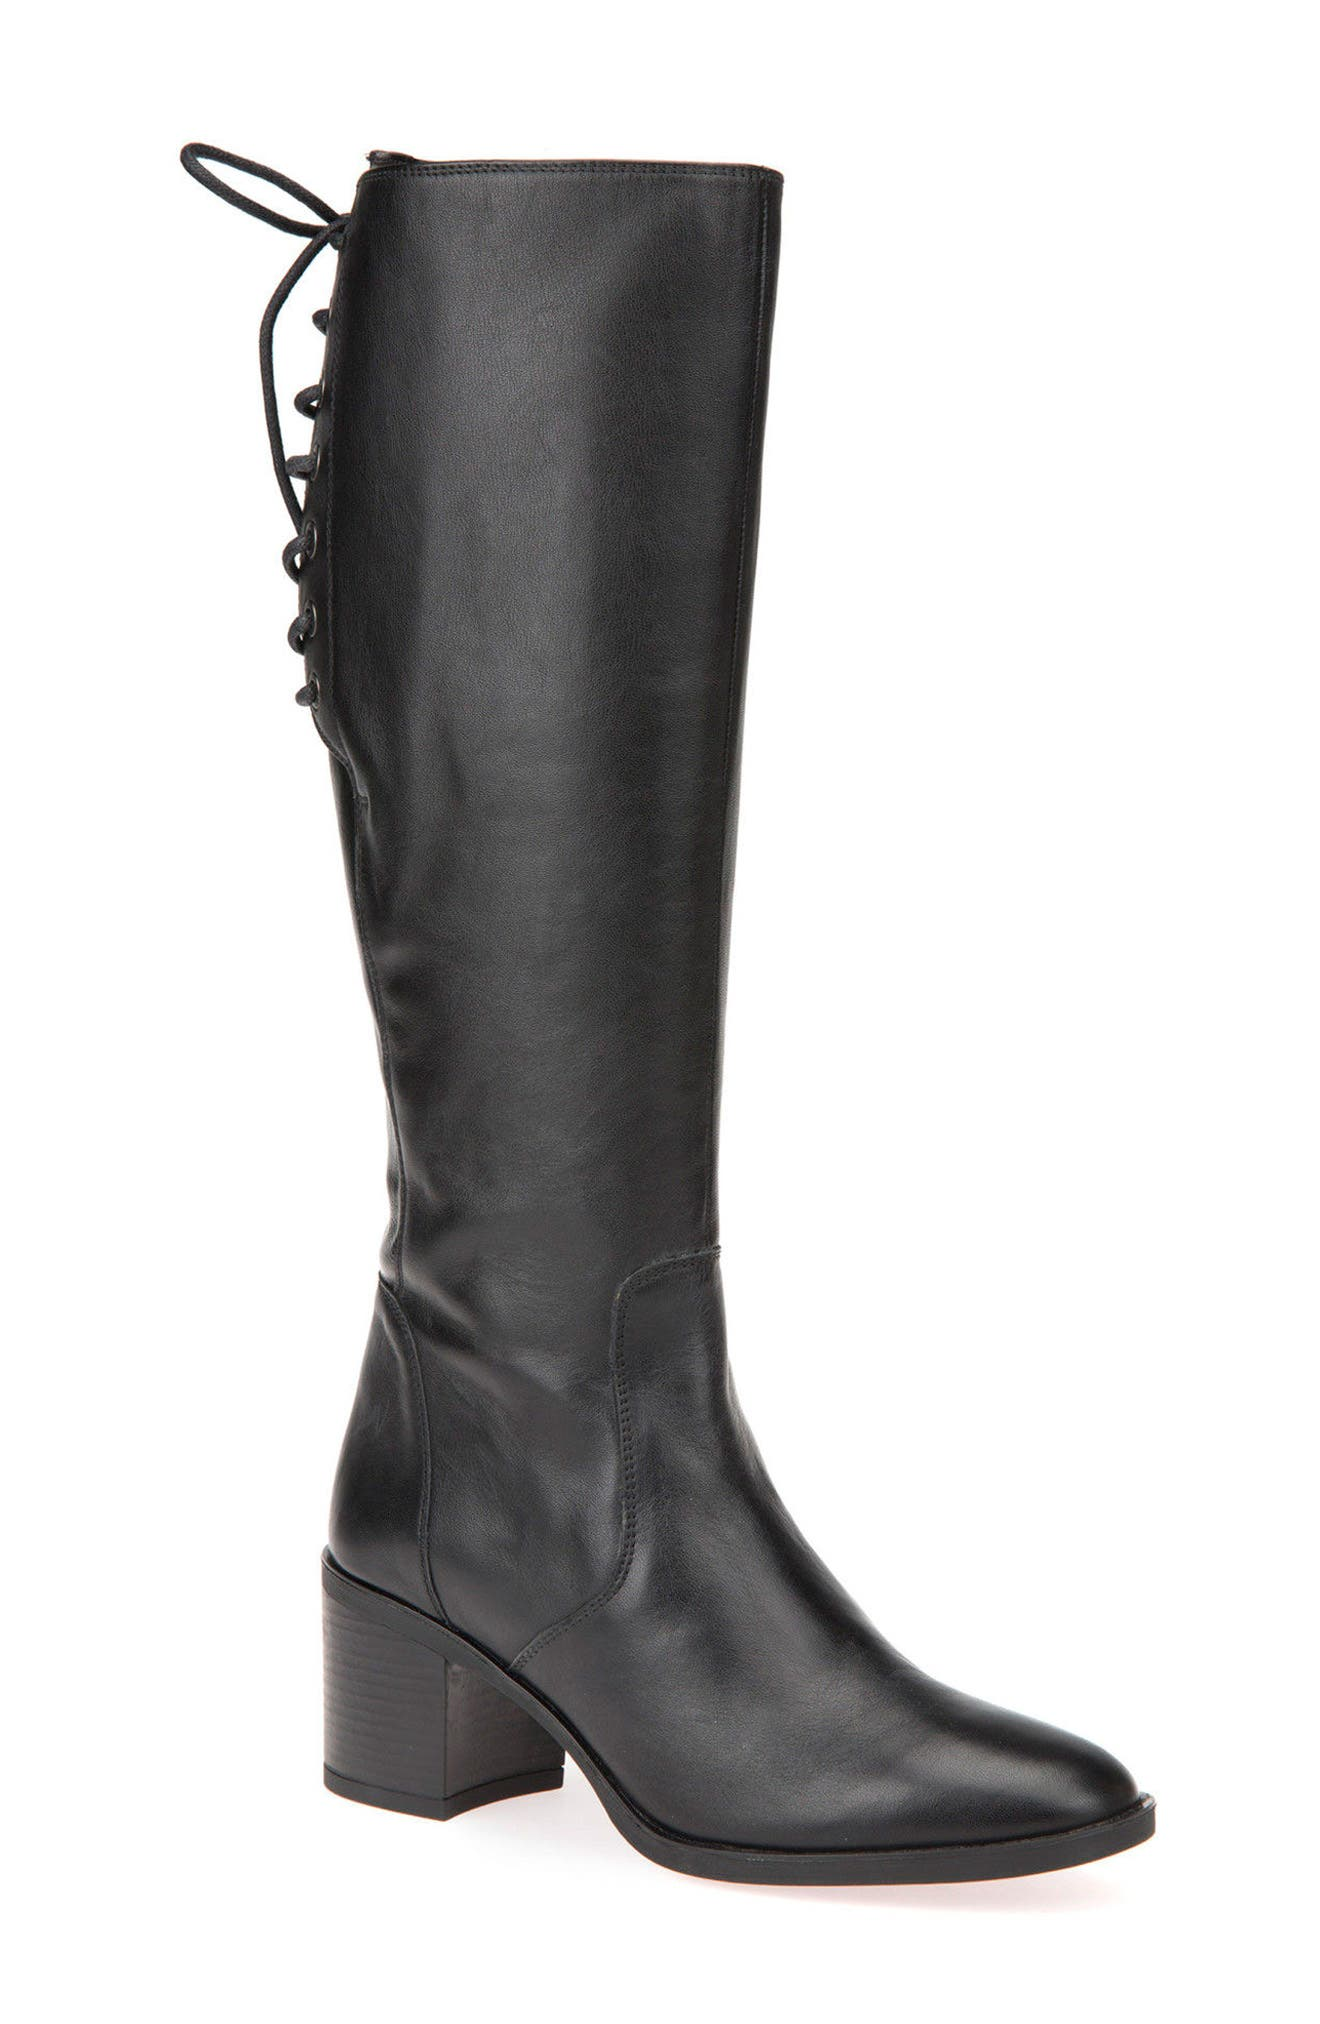 Alternate Image 1 Selected - Geox Glynna Knee High Boot (Women)